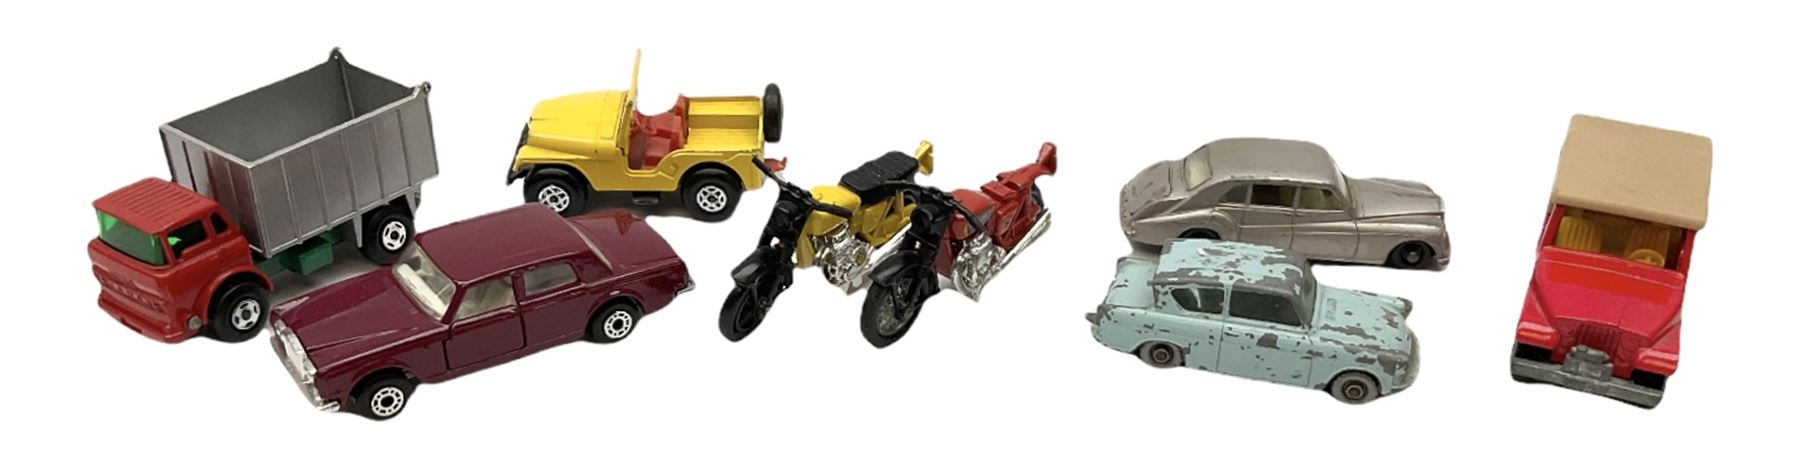 Matchbox/Superfast - nine '1-75' series models comprising 64d Fire Chief car - Image 3 of 8